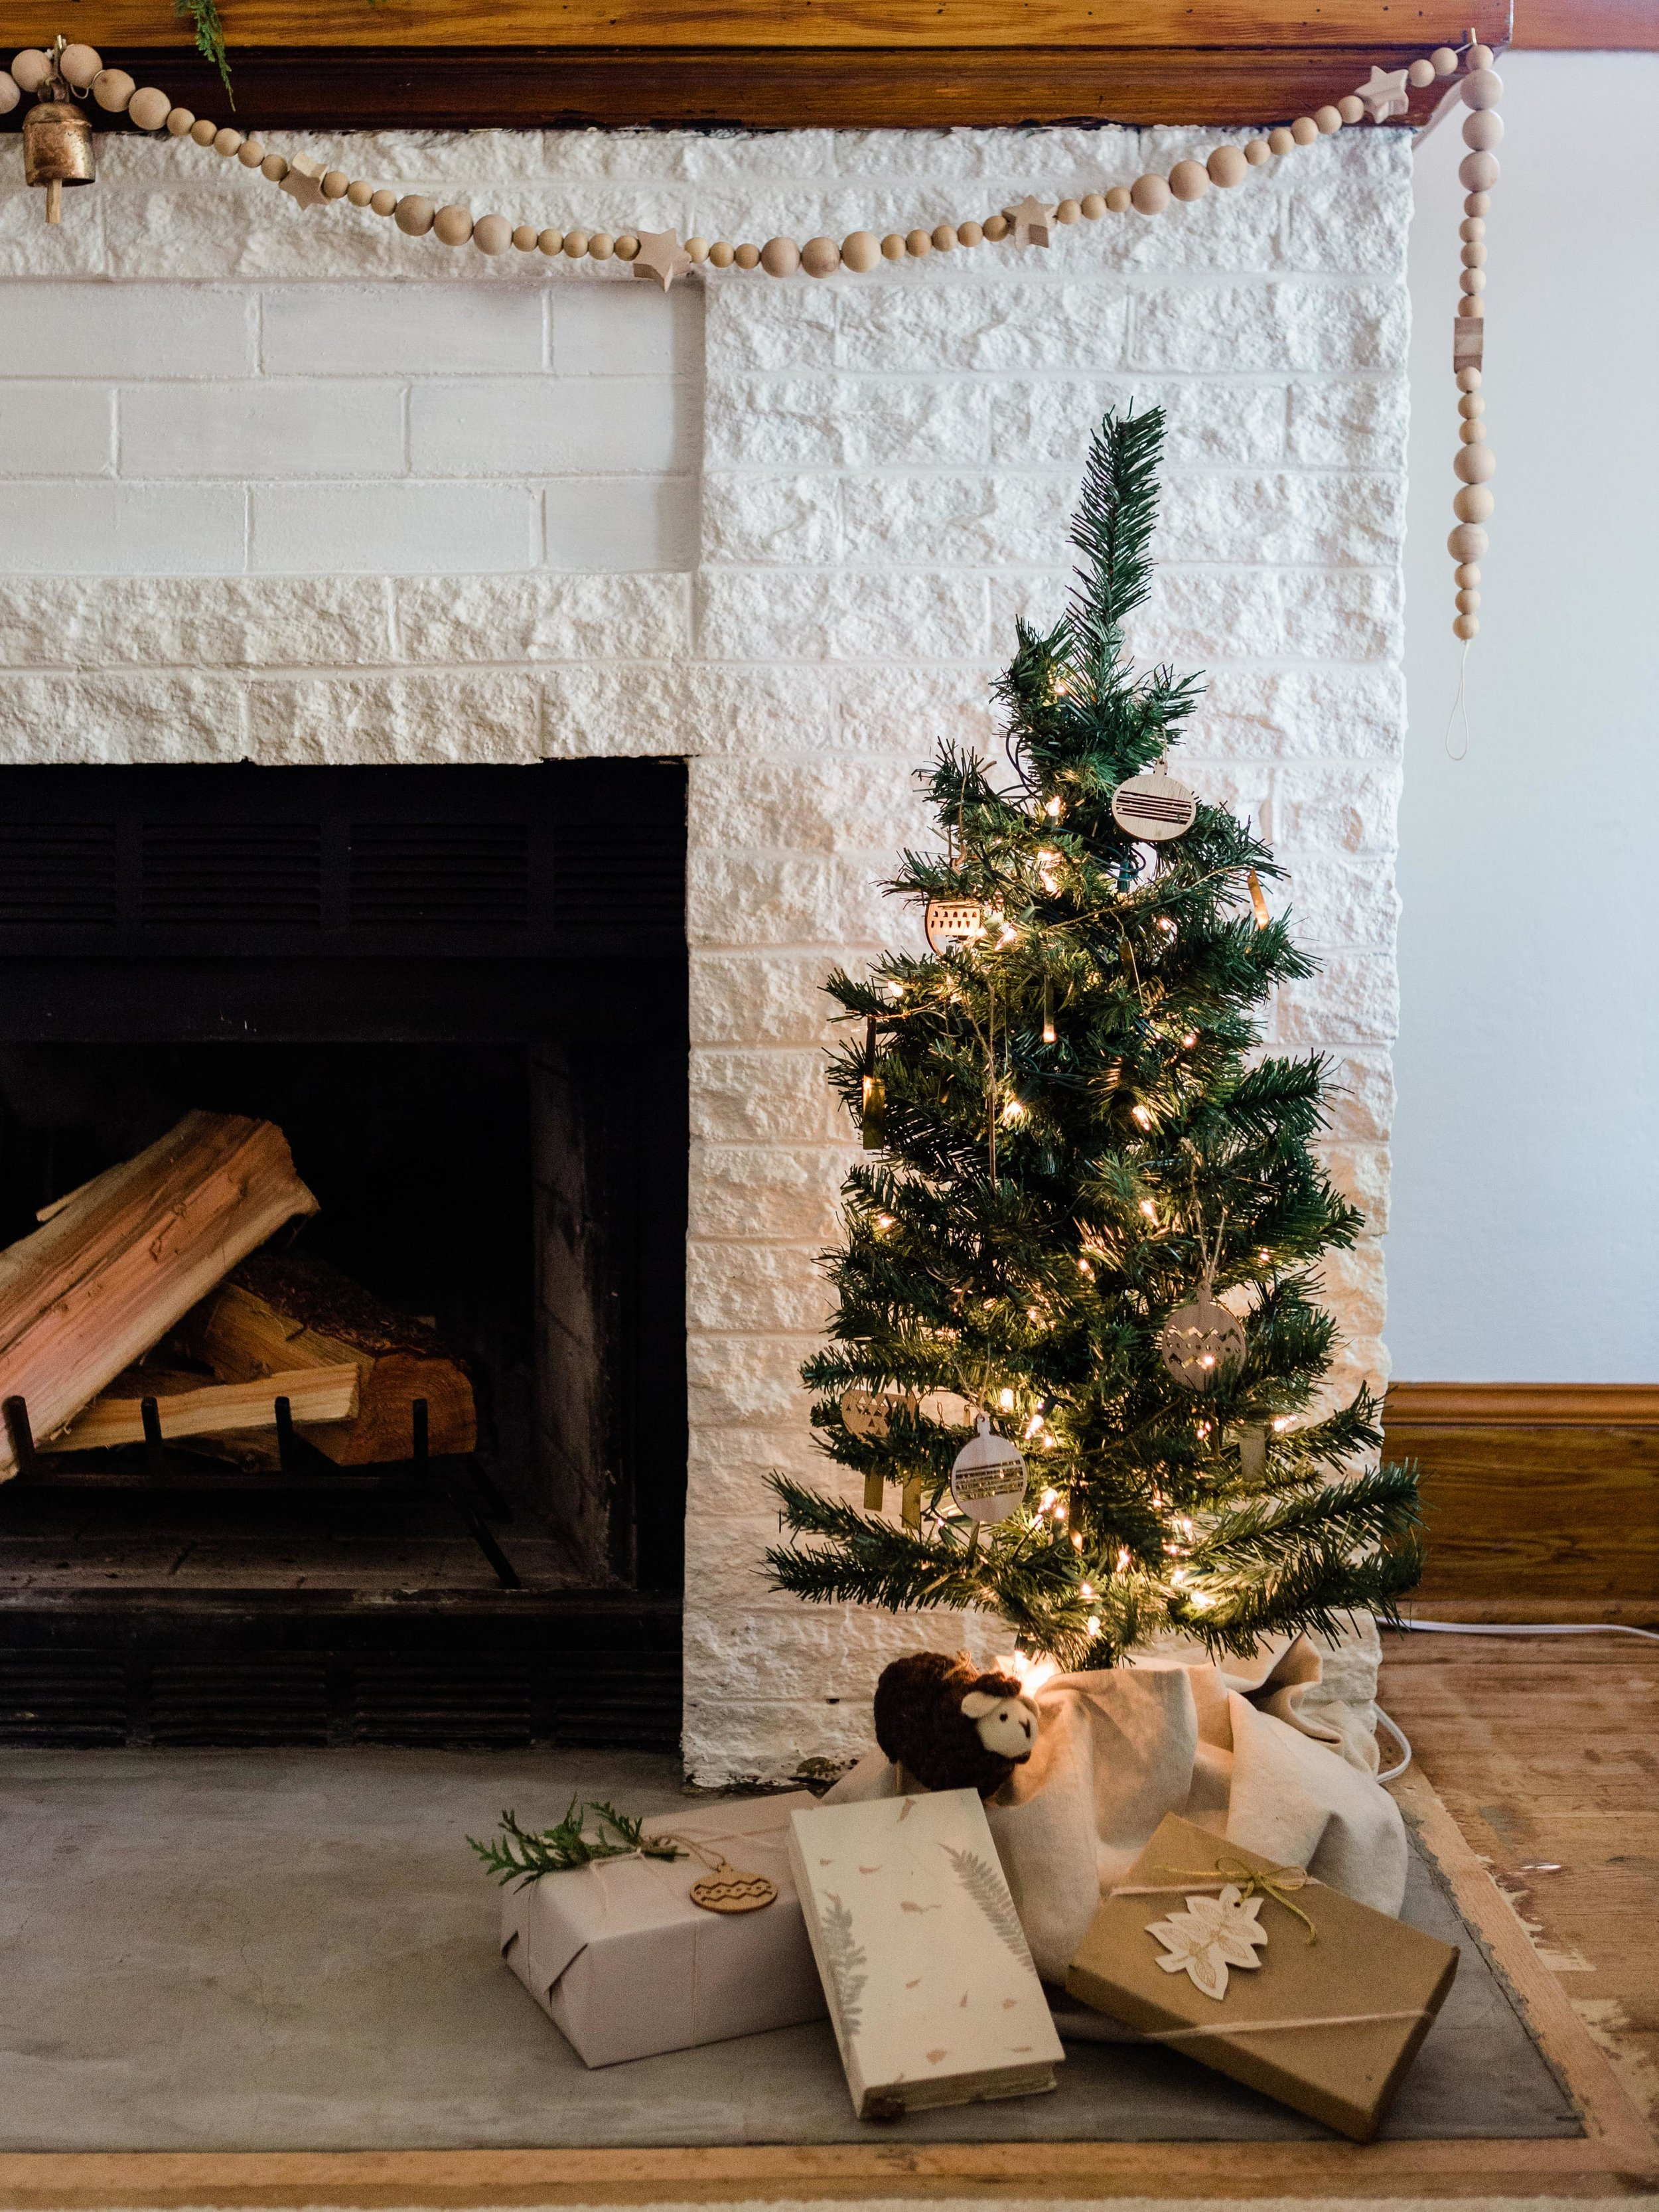 A simple and minimal Christmas from Foragedhome.com